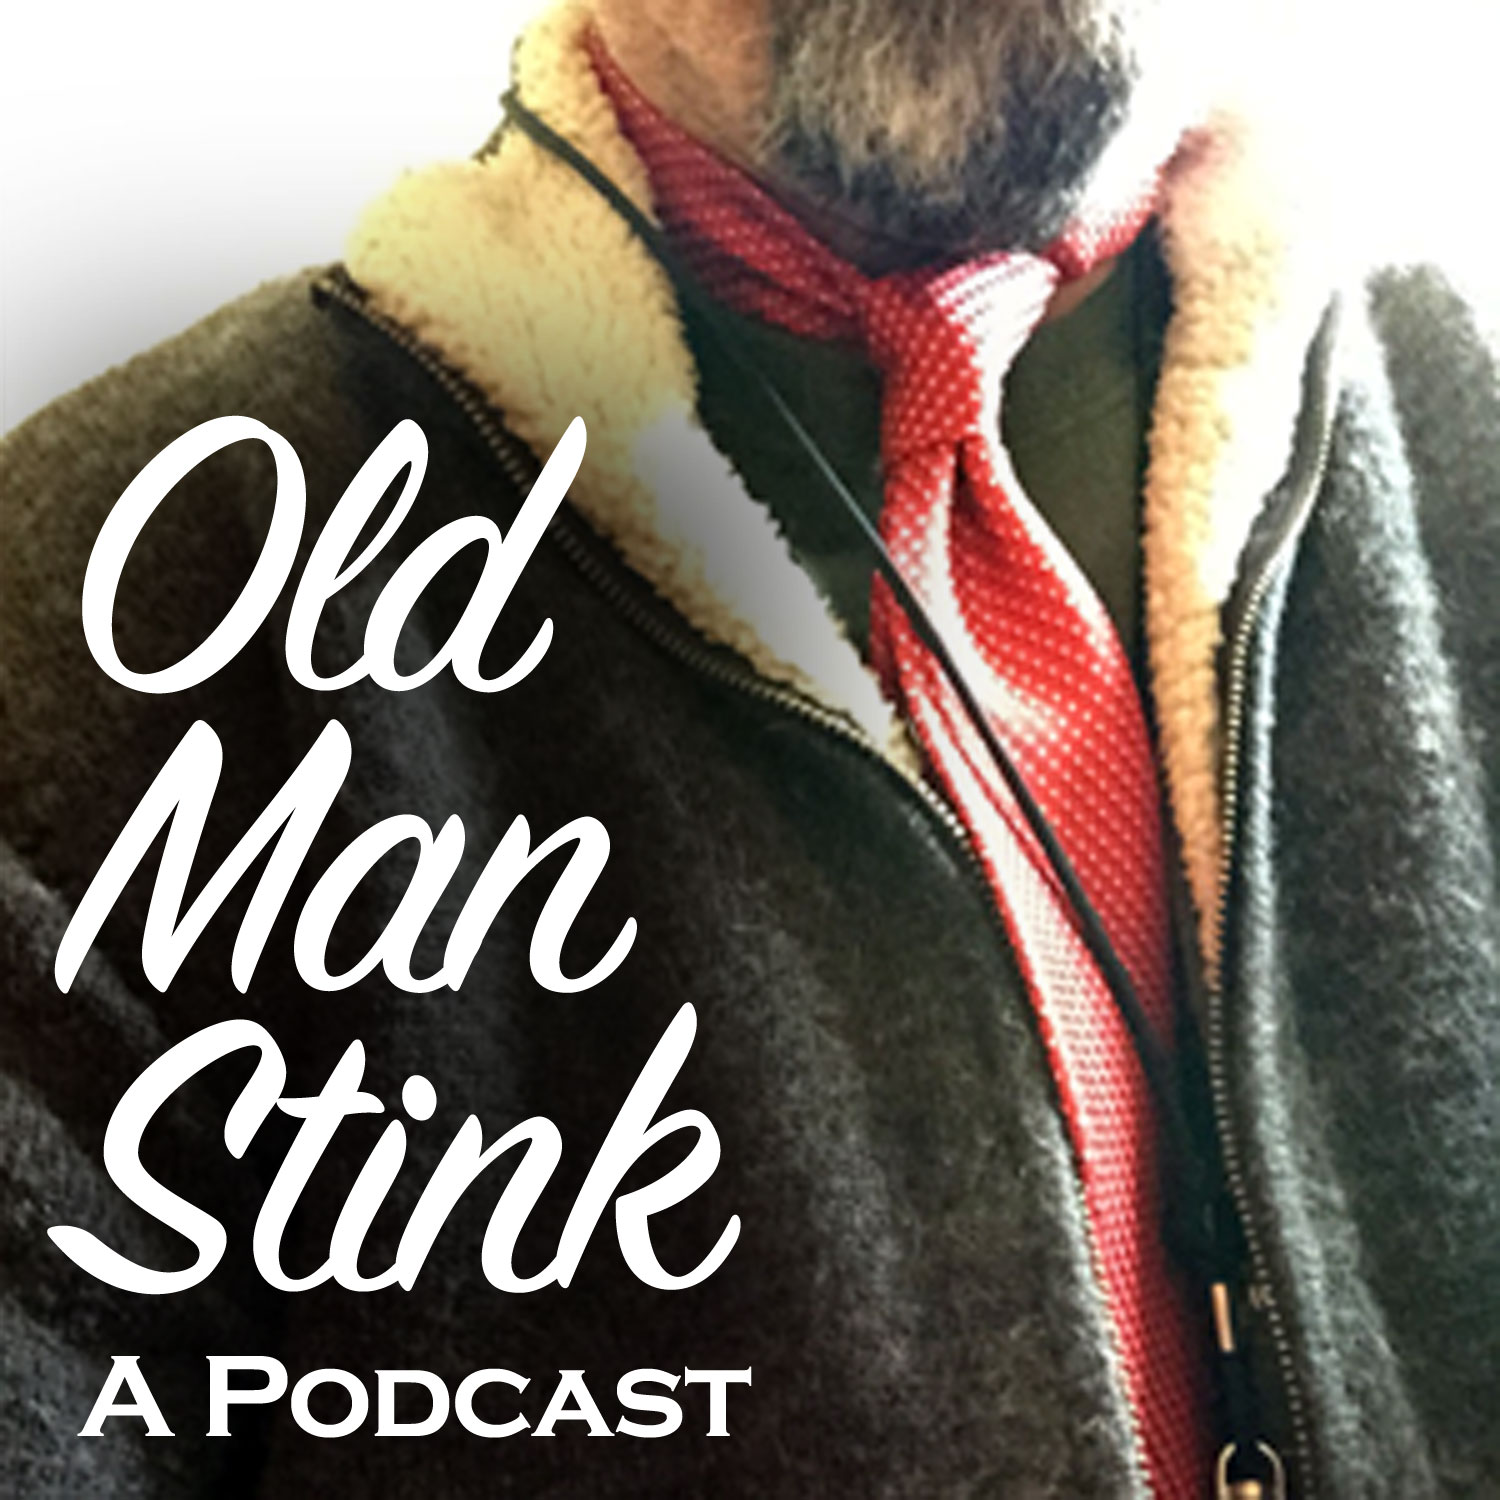 Old Man Stink